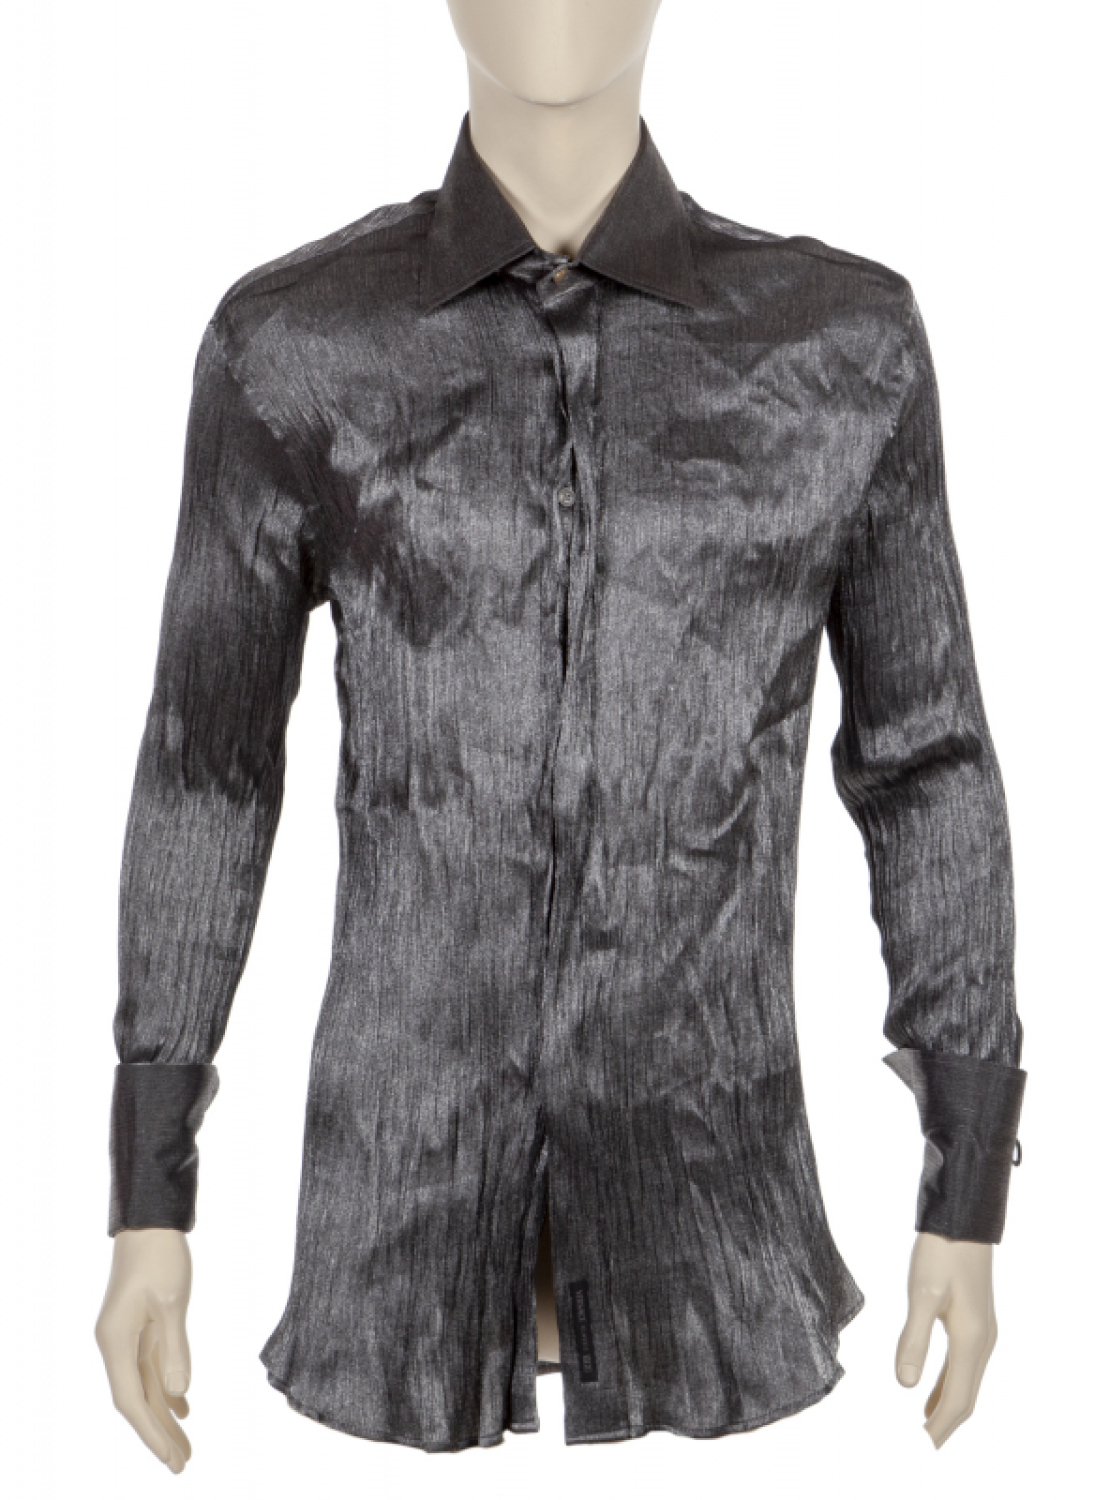 SLASH GIANNI VERSACE SHIRT - Price Estimate: $400 - $600